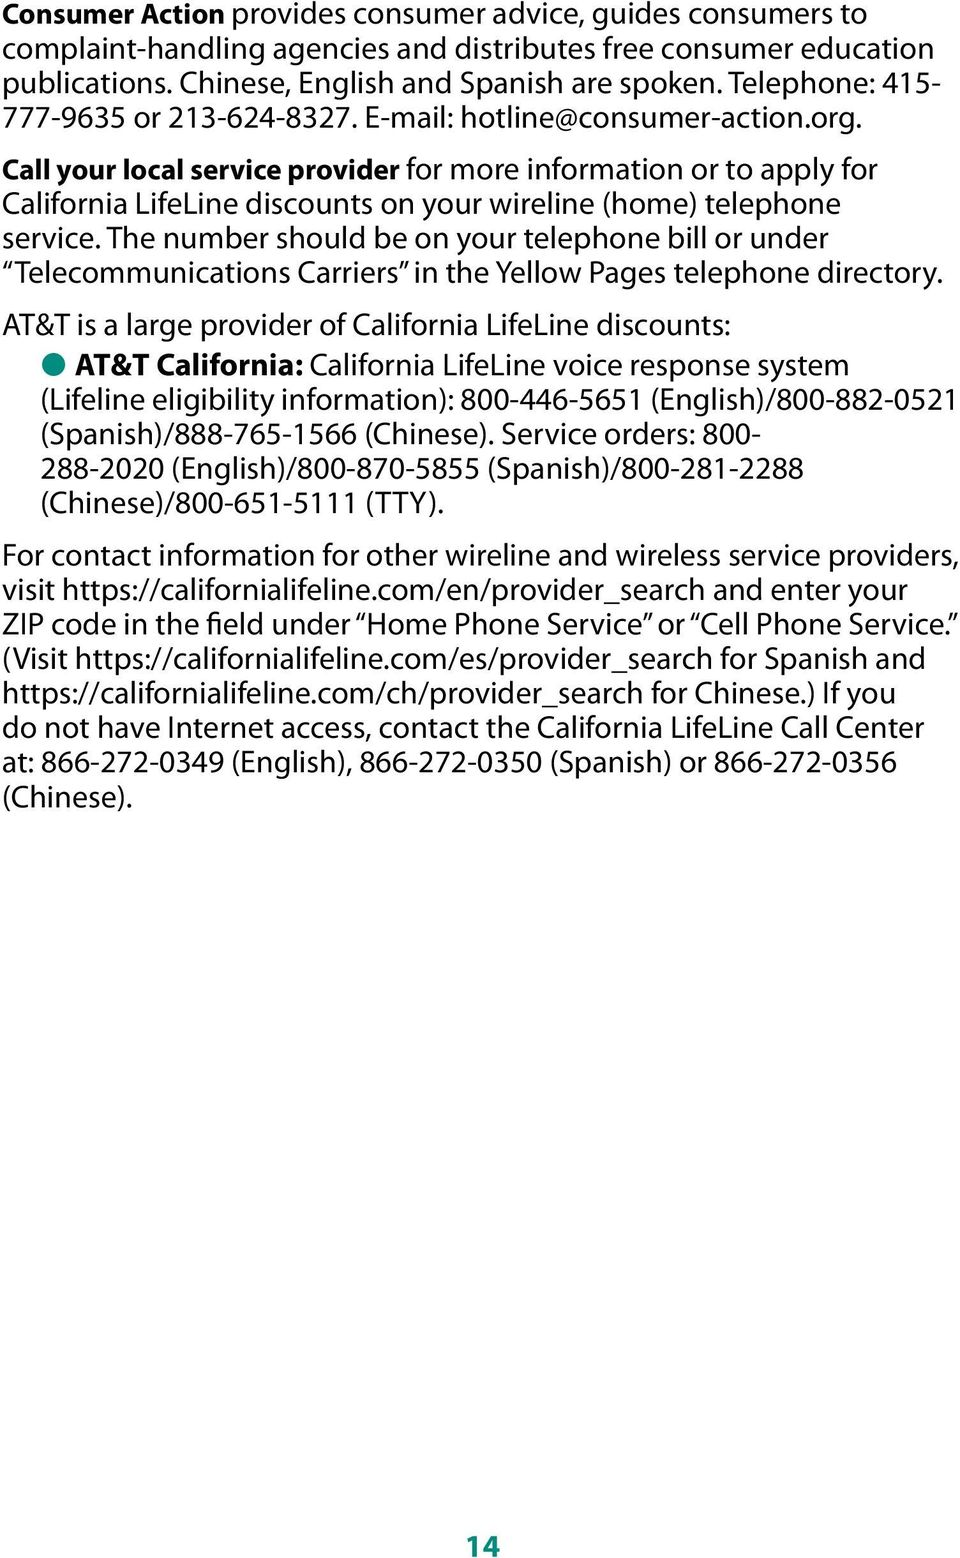 Call your local service provider for more information or to apply for California LifeLine discounts on your wireline (home) telephone service.